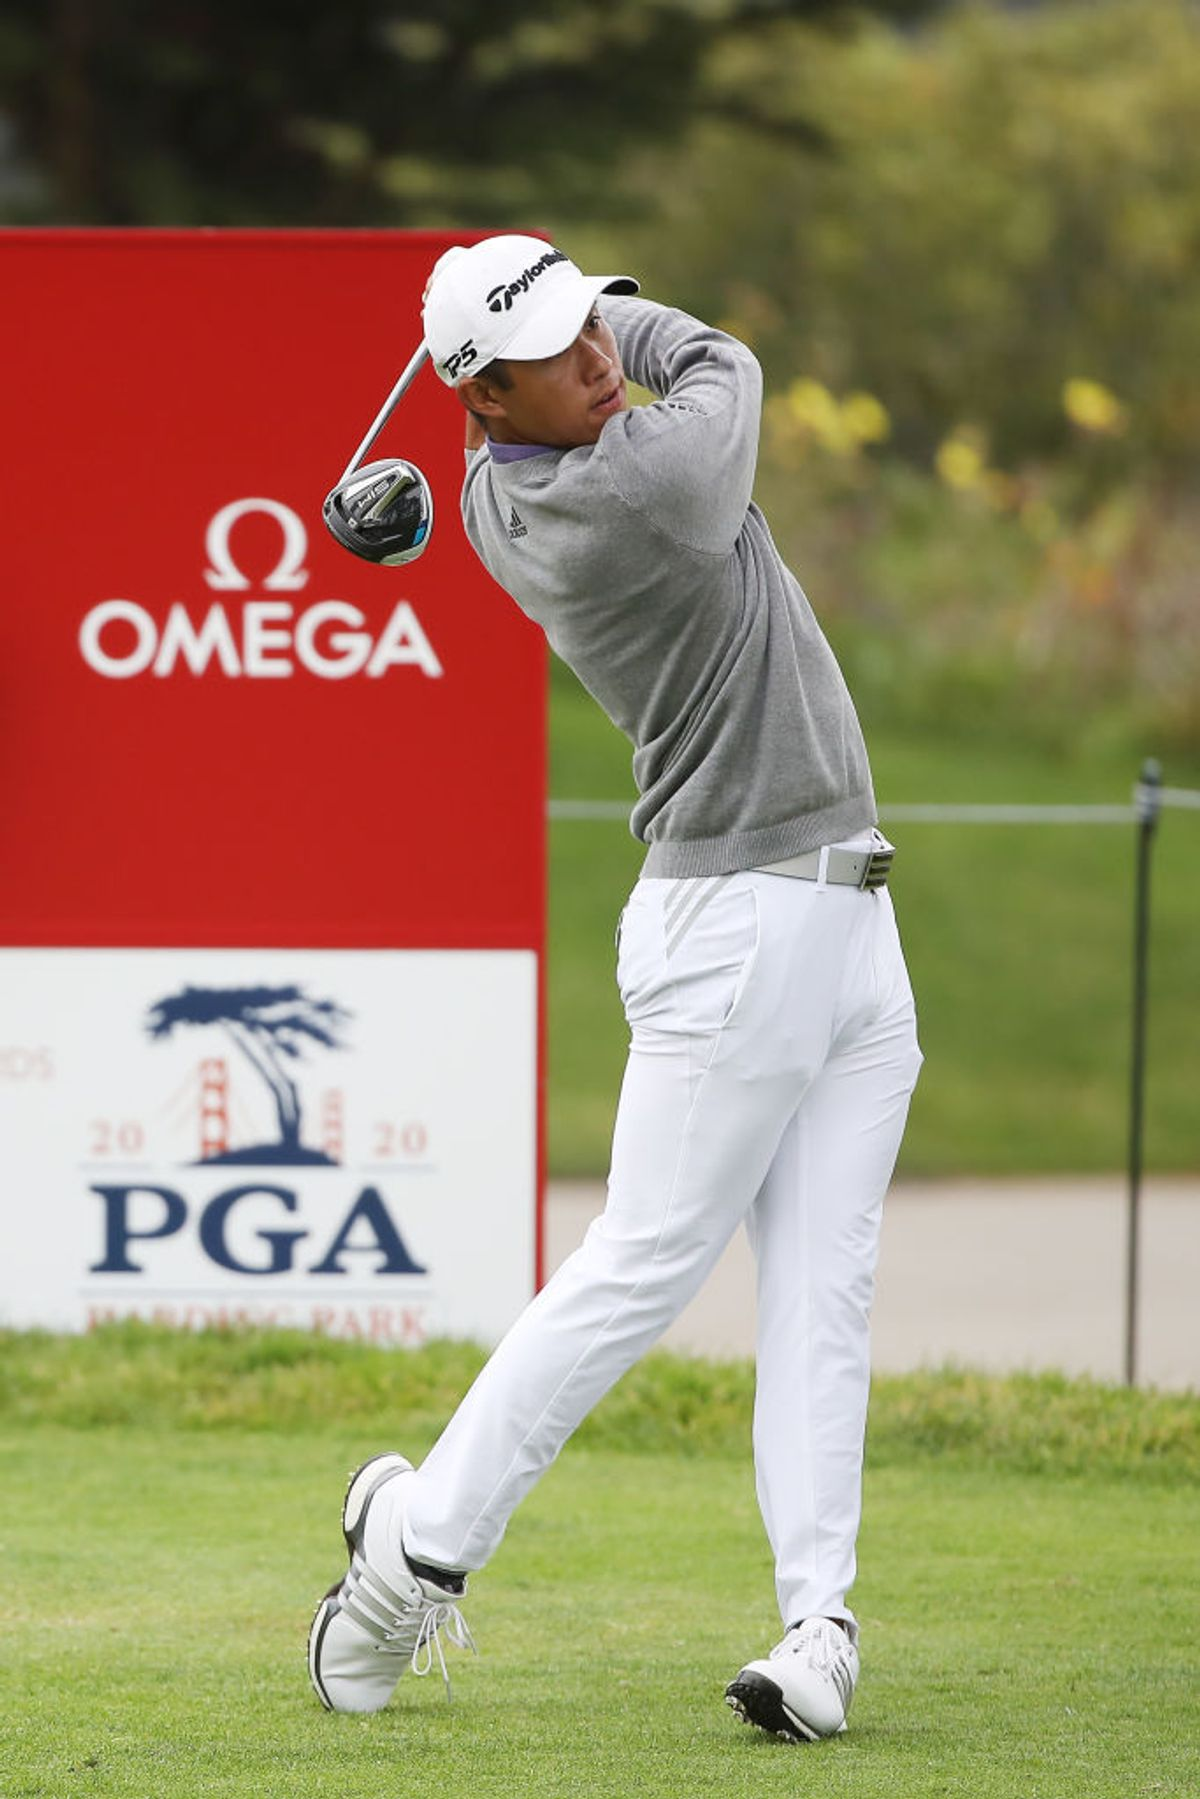 OMEGA Watches Collin Morikawa Wins PGA Championship